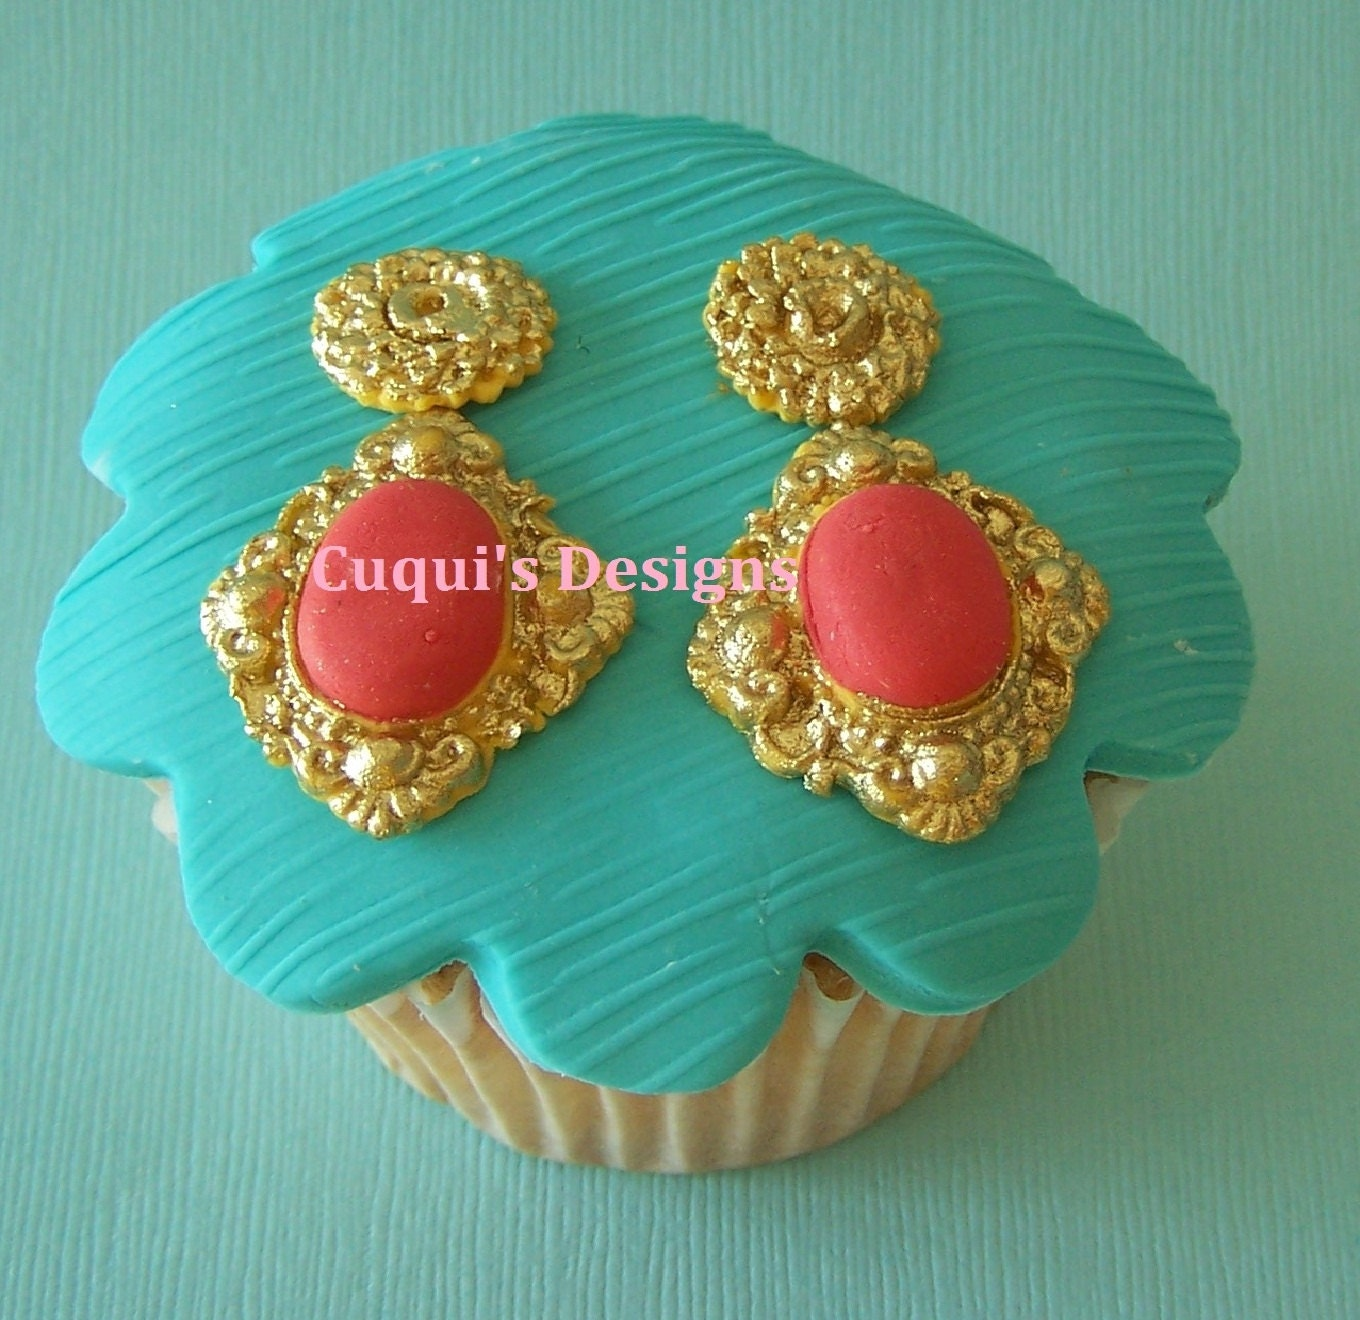 Cake Images With Gems : Edible Cupcake Topper Fondant Gems JEWEL Cake by ...